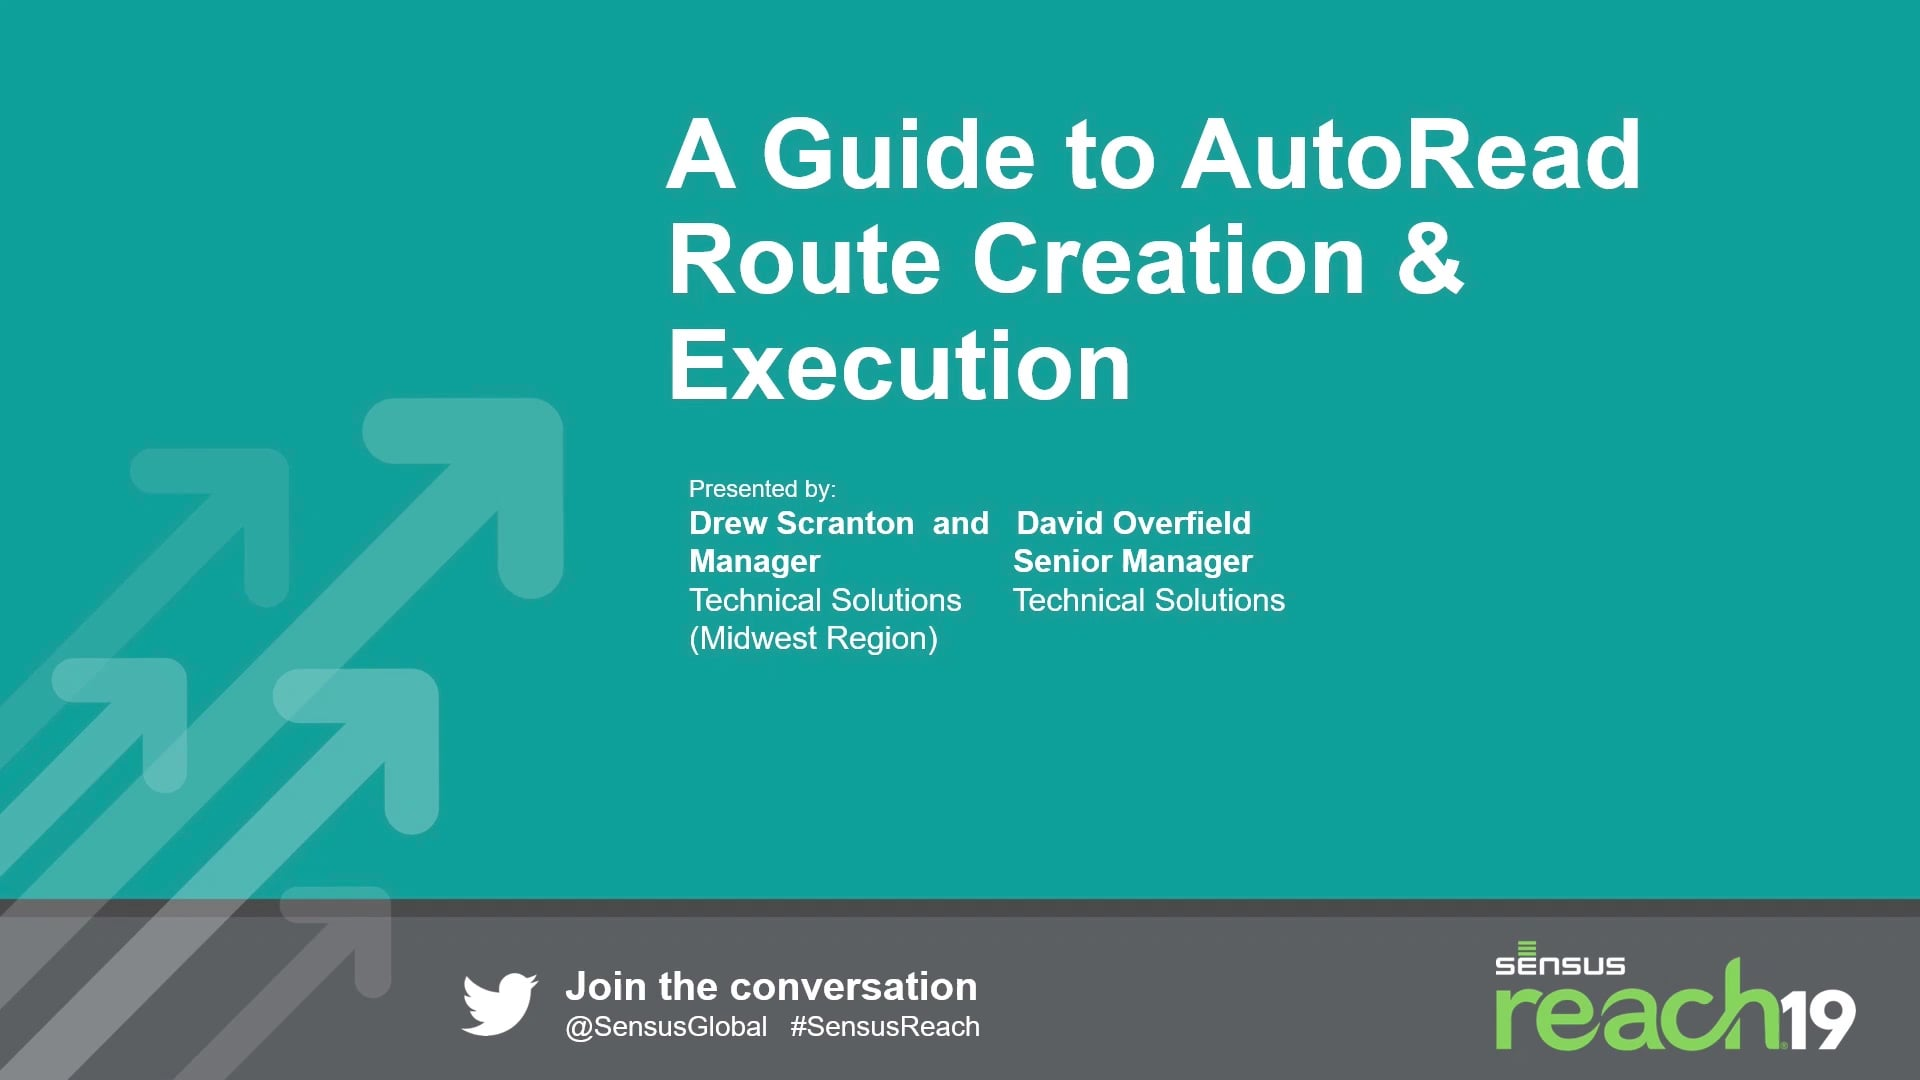 A Guide to AutoRead Route Creation and Execution